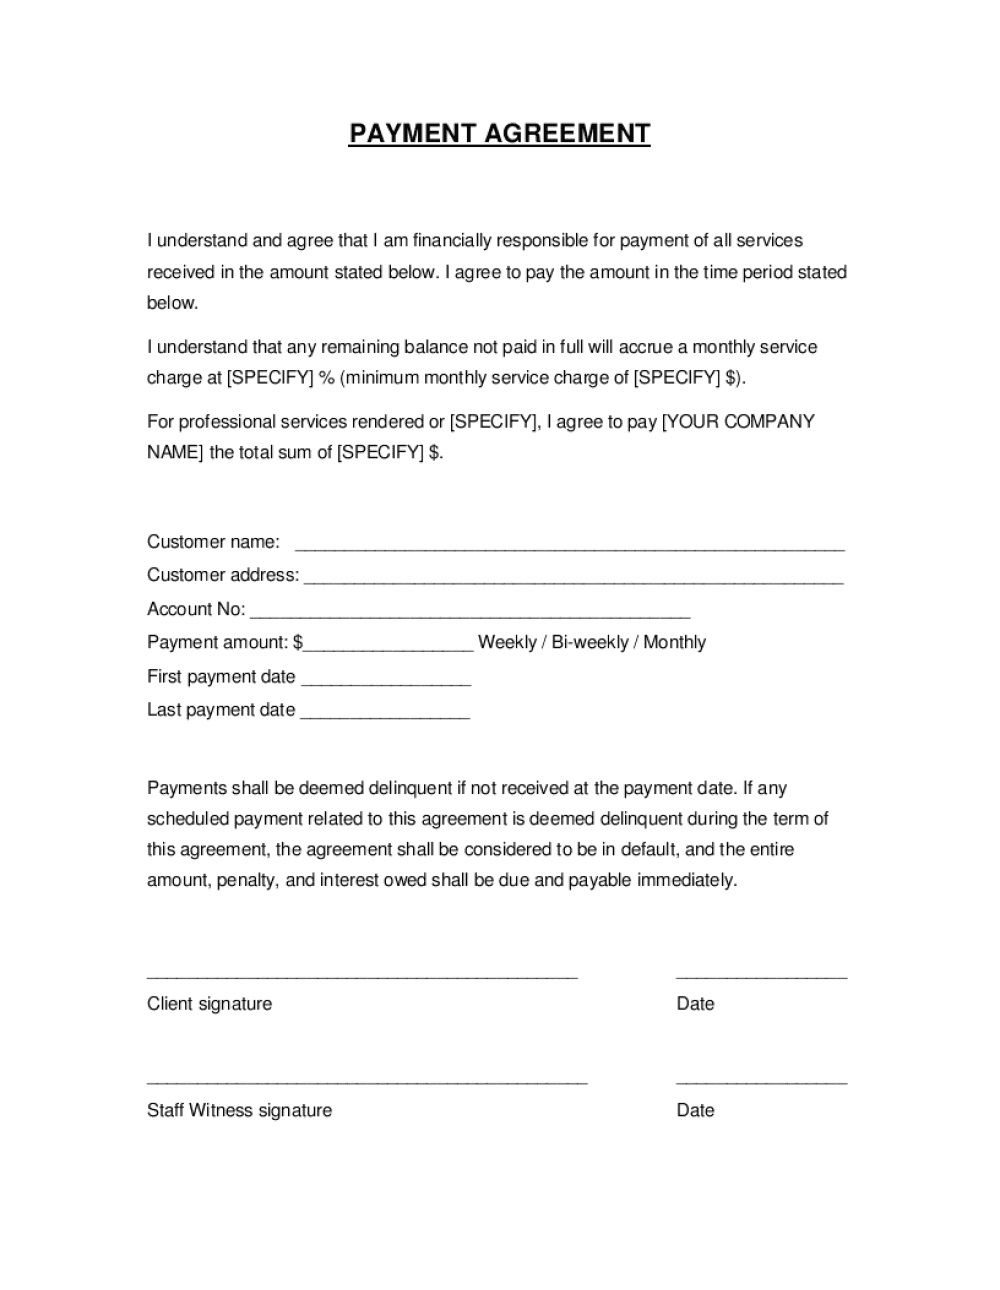 003 Wonderful Installment Payment Contract Template High Definition  Car Agreement Simple MonthlyFull